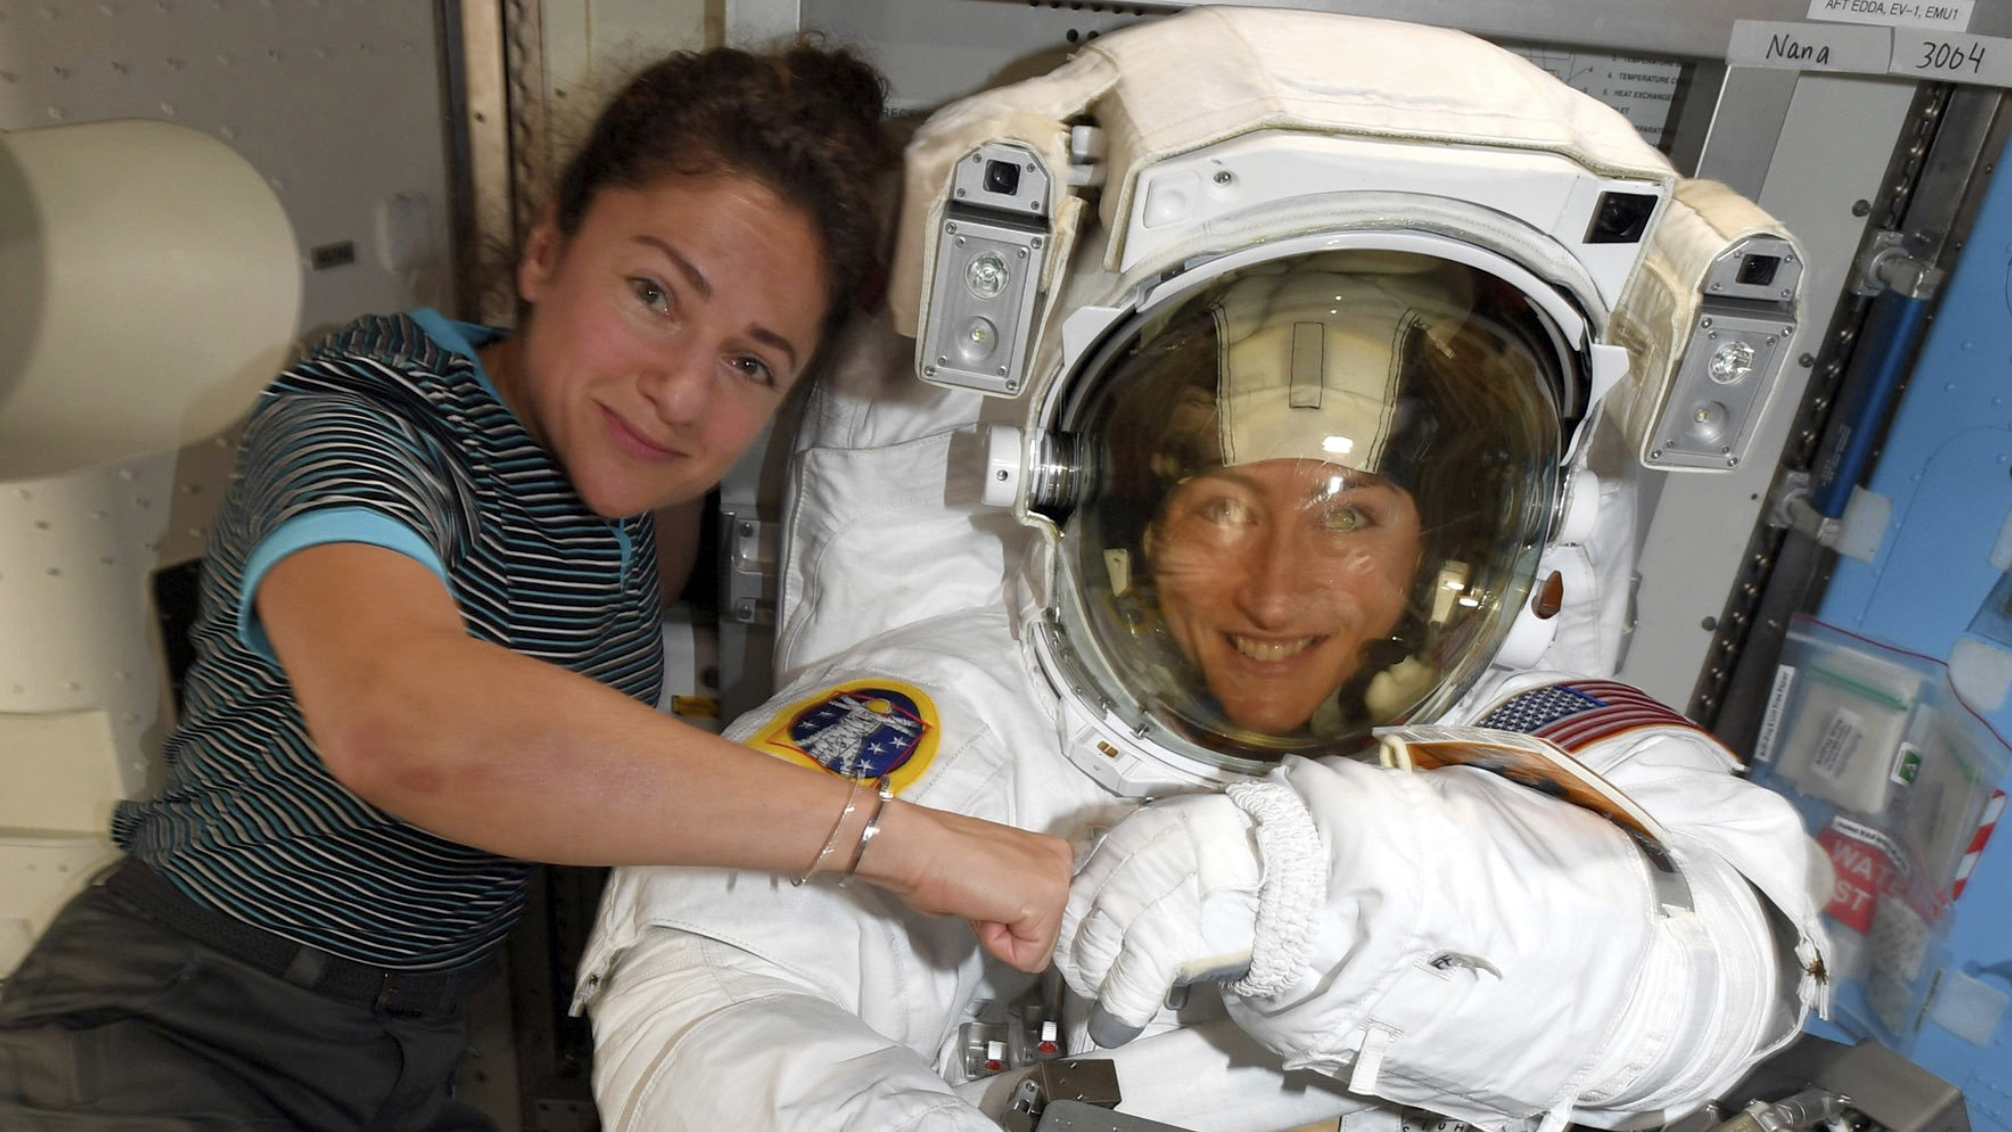 Finally, An All-Female Spacewalk